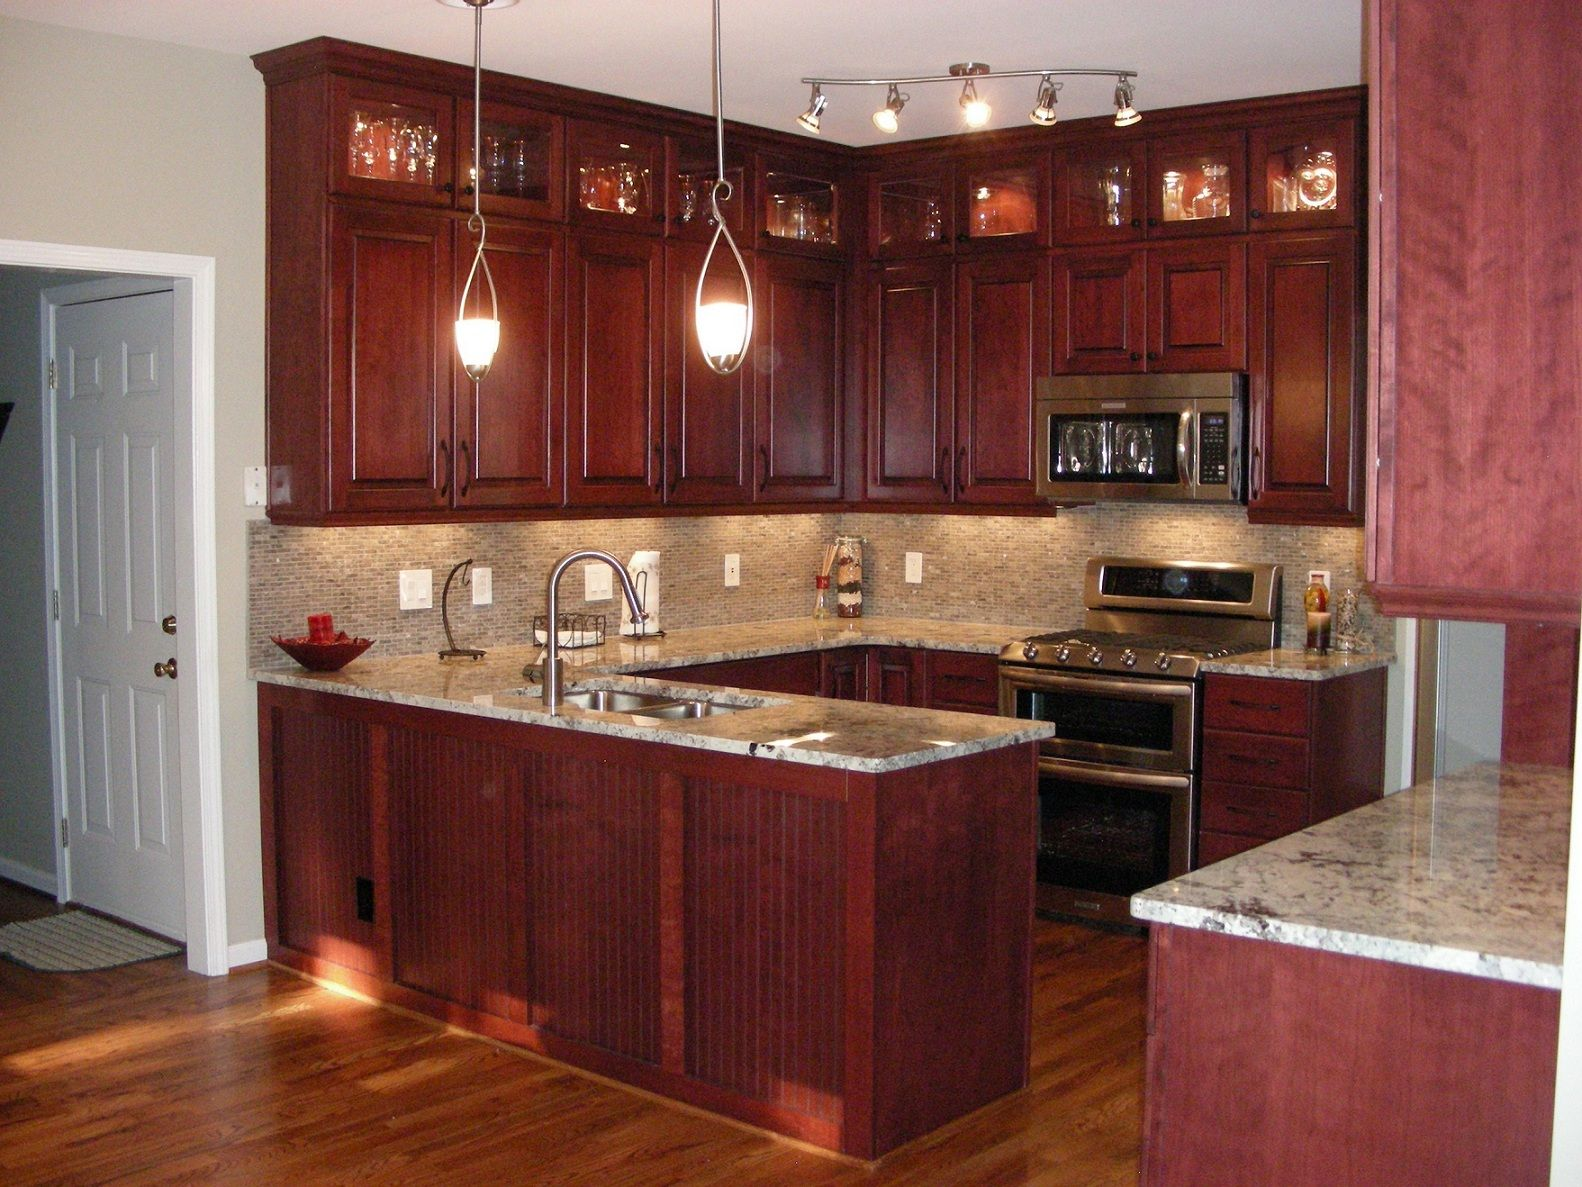 Cherry Kitchen Cabinets With Gray Wall And Quartz Countertops Ideas Kitchen Remodel Small Cherry Wood Kitchen Cabinets Cherry Wood Kitchens